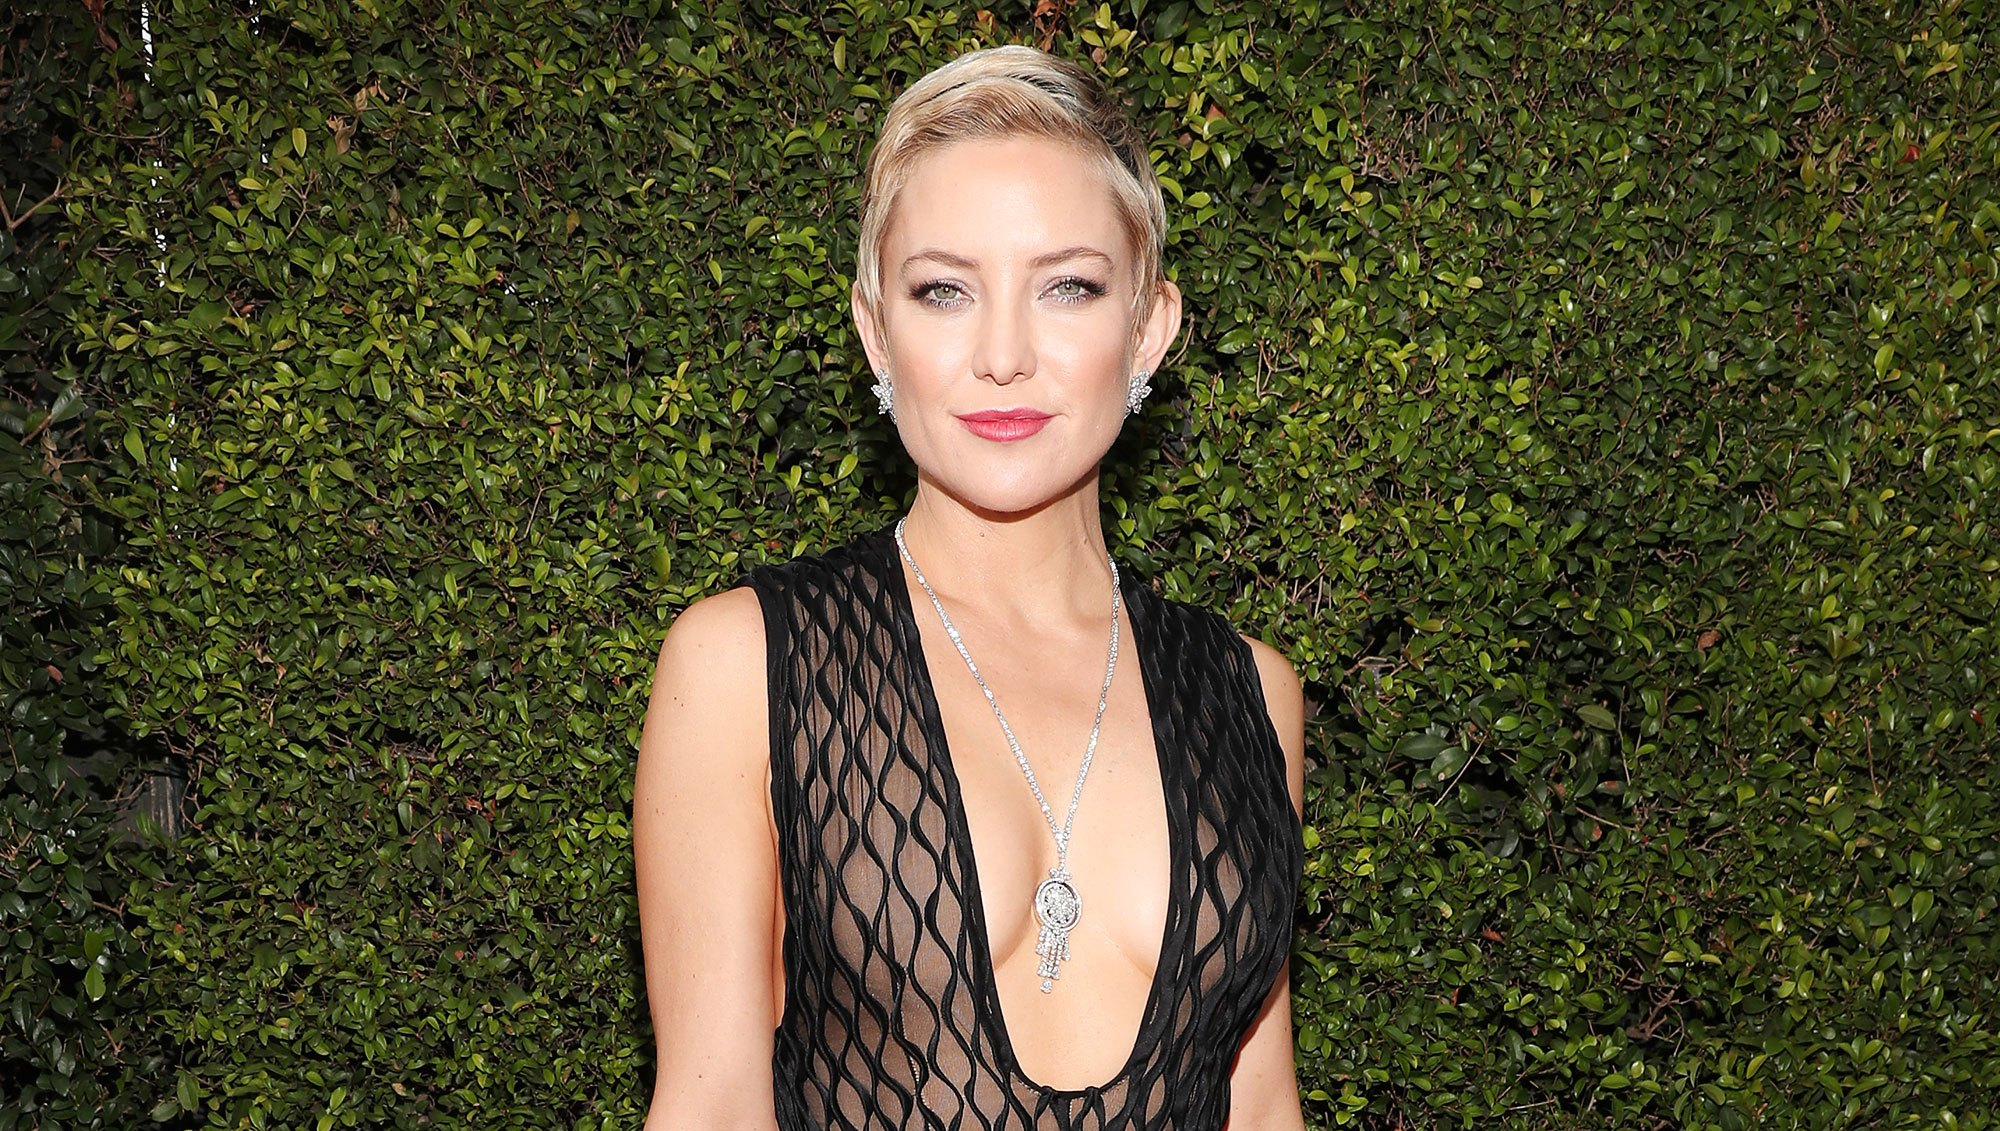 Kate Hudson Flashes Killer Post-Pregnancy Abs in Instagram Selfie While 'Bored on Set'